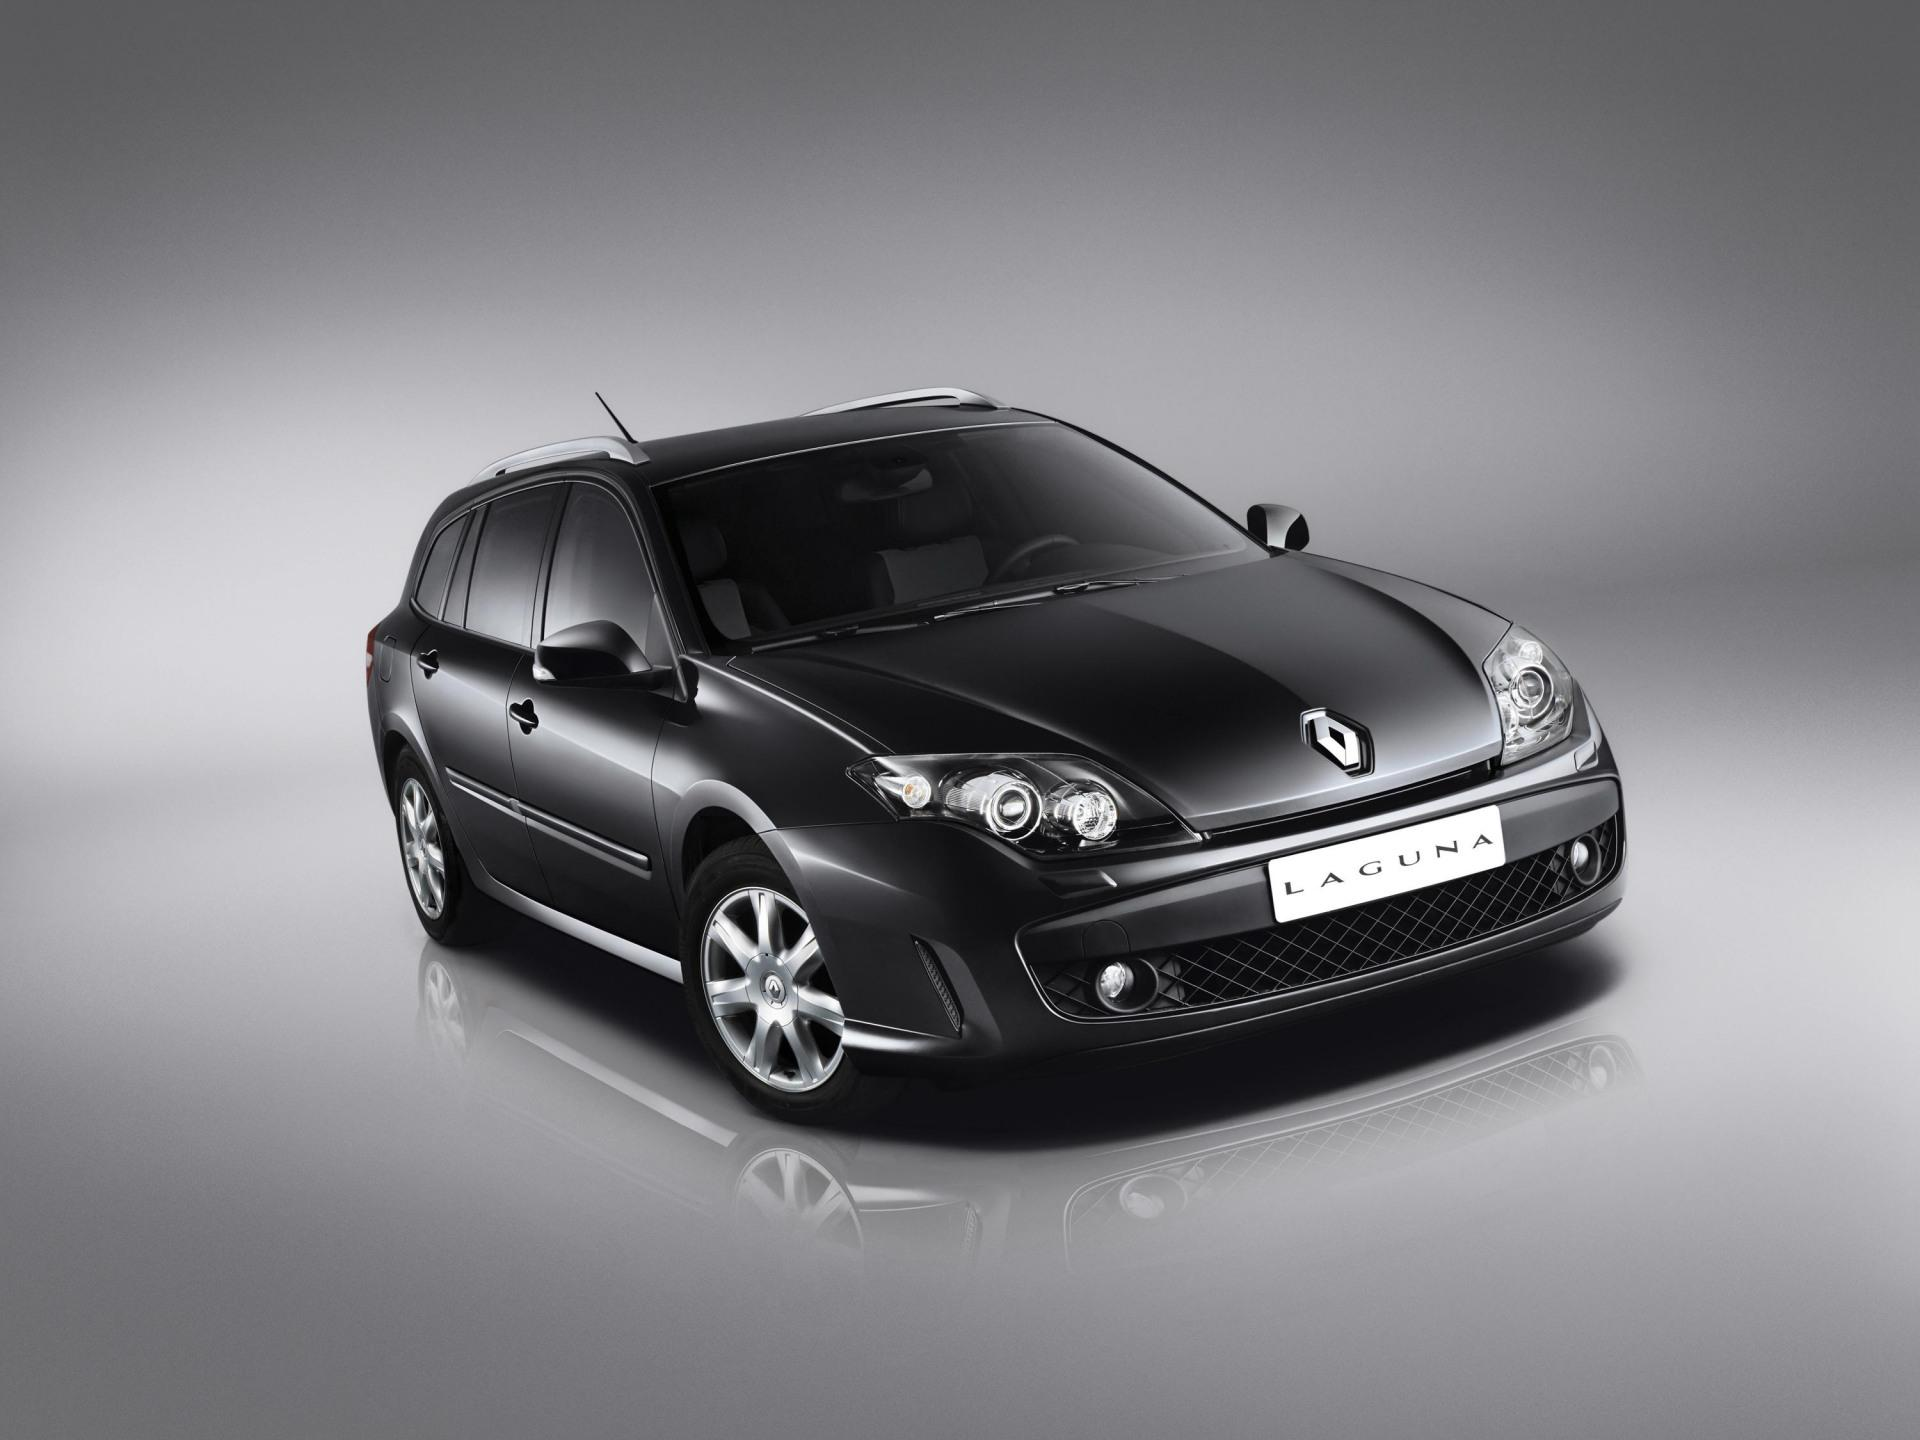 2009 renault laguna black edition news and information. Black Bedroom Furniture Sets. Home Design Ideas